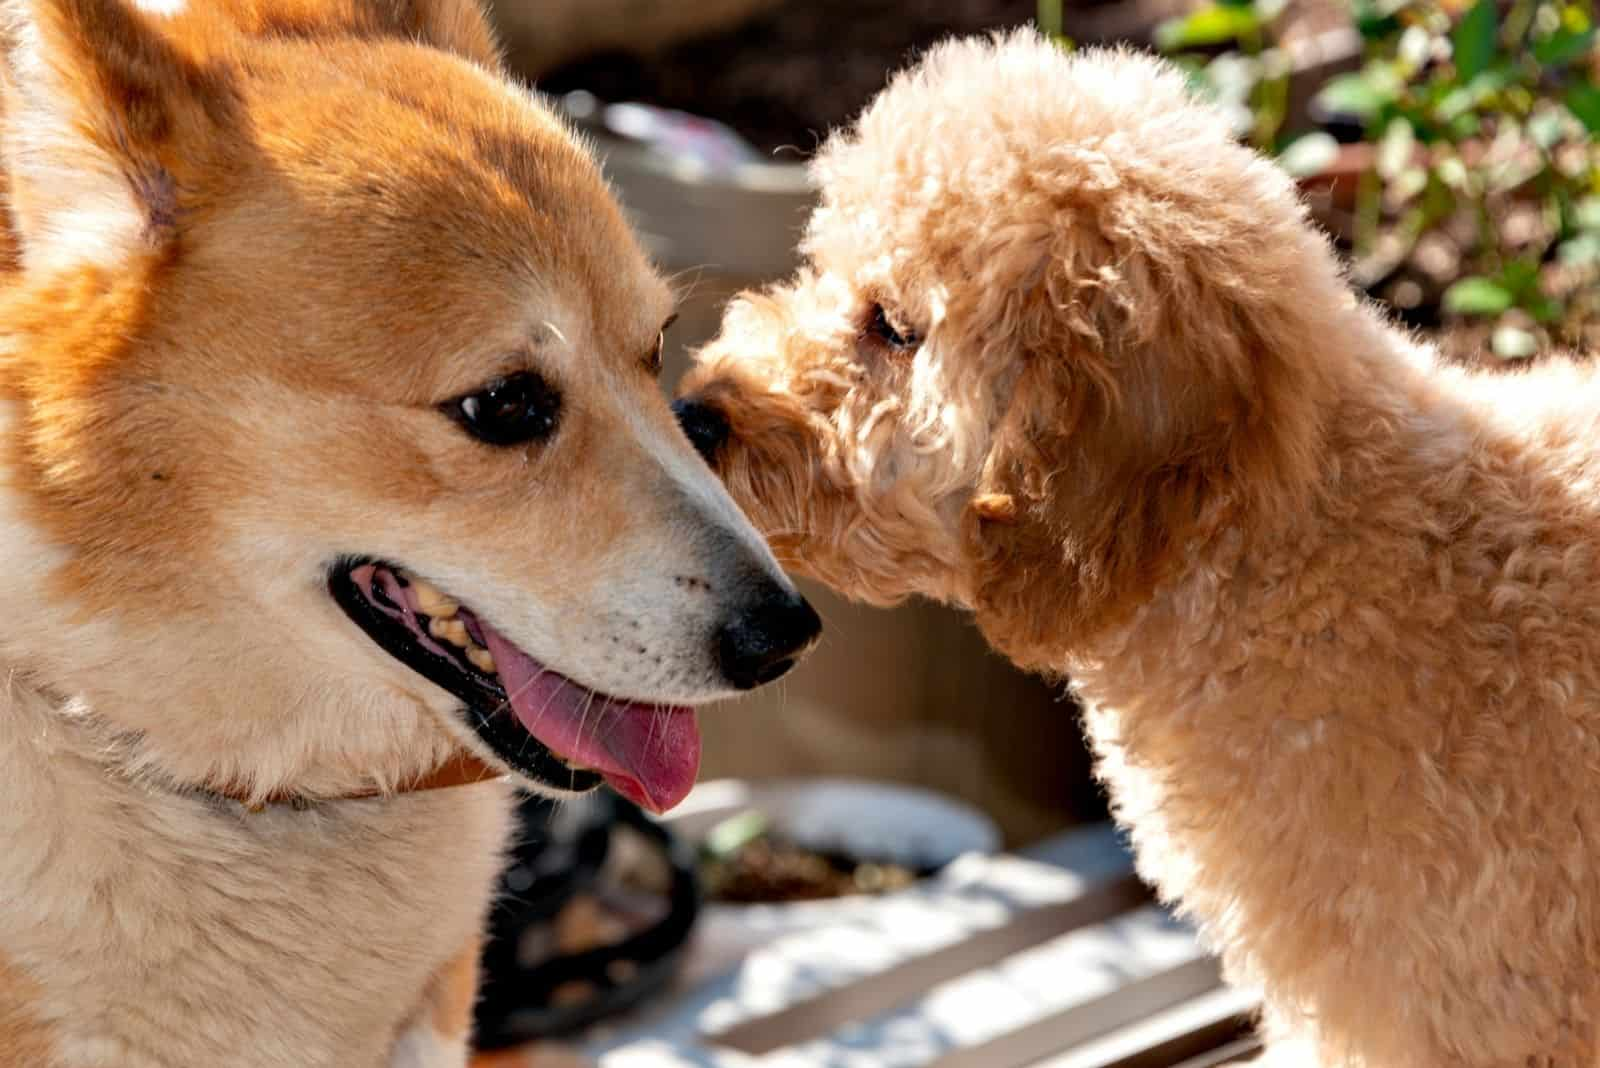 welsh corgi kissed by a toy poodle in their first contact in the garden